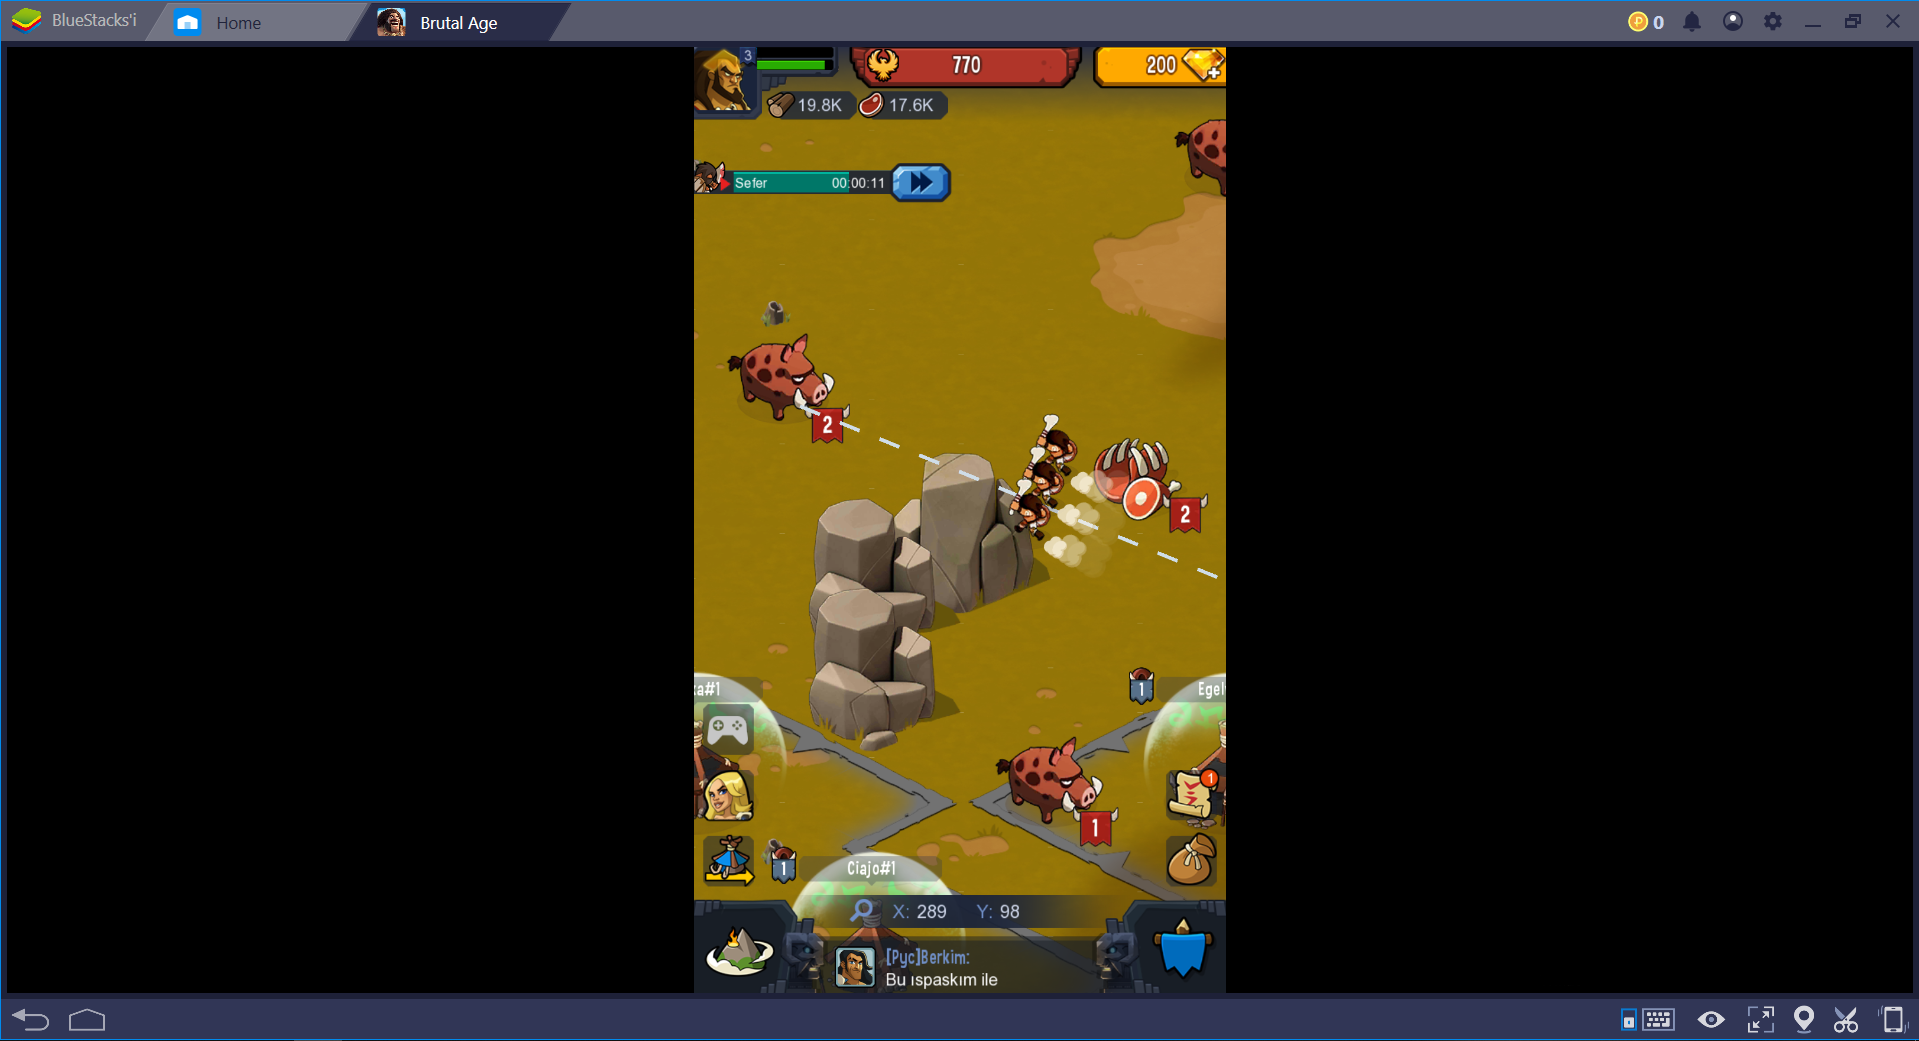 Brutal Age BlueStacks